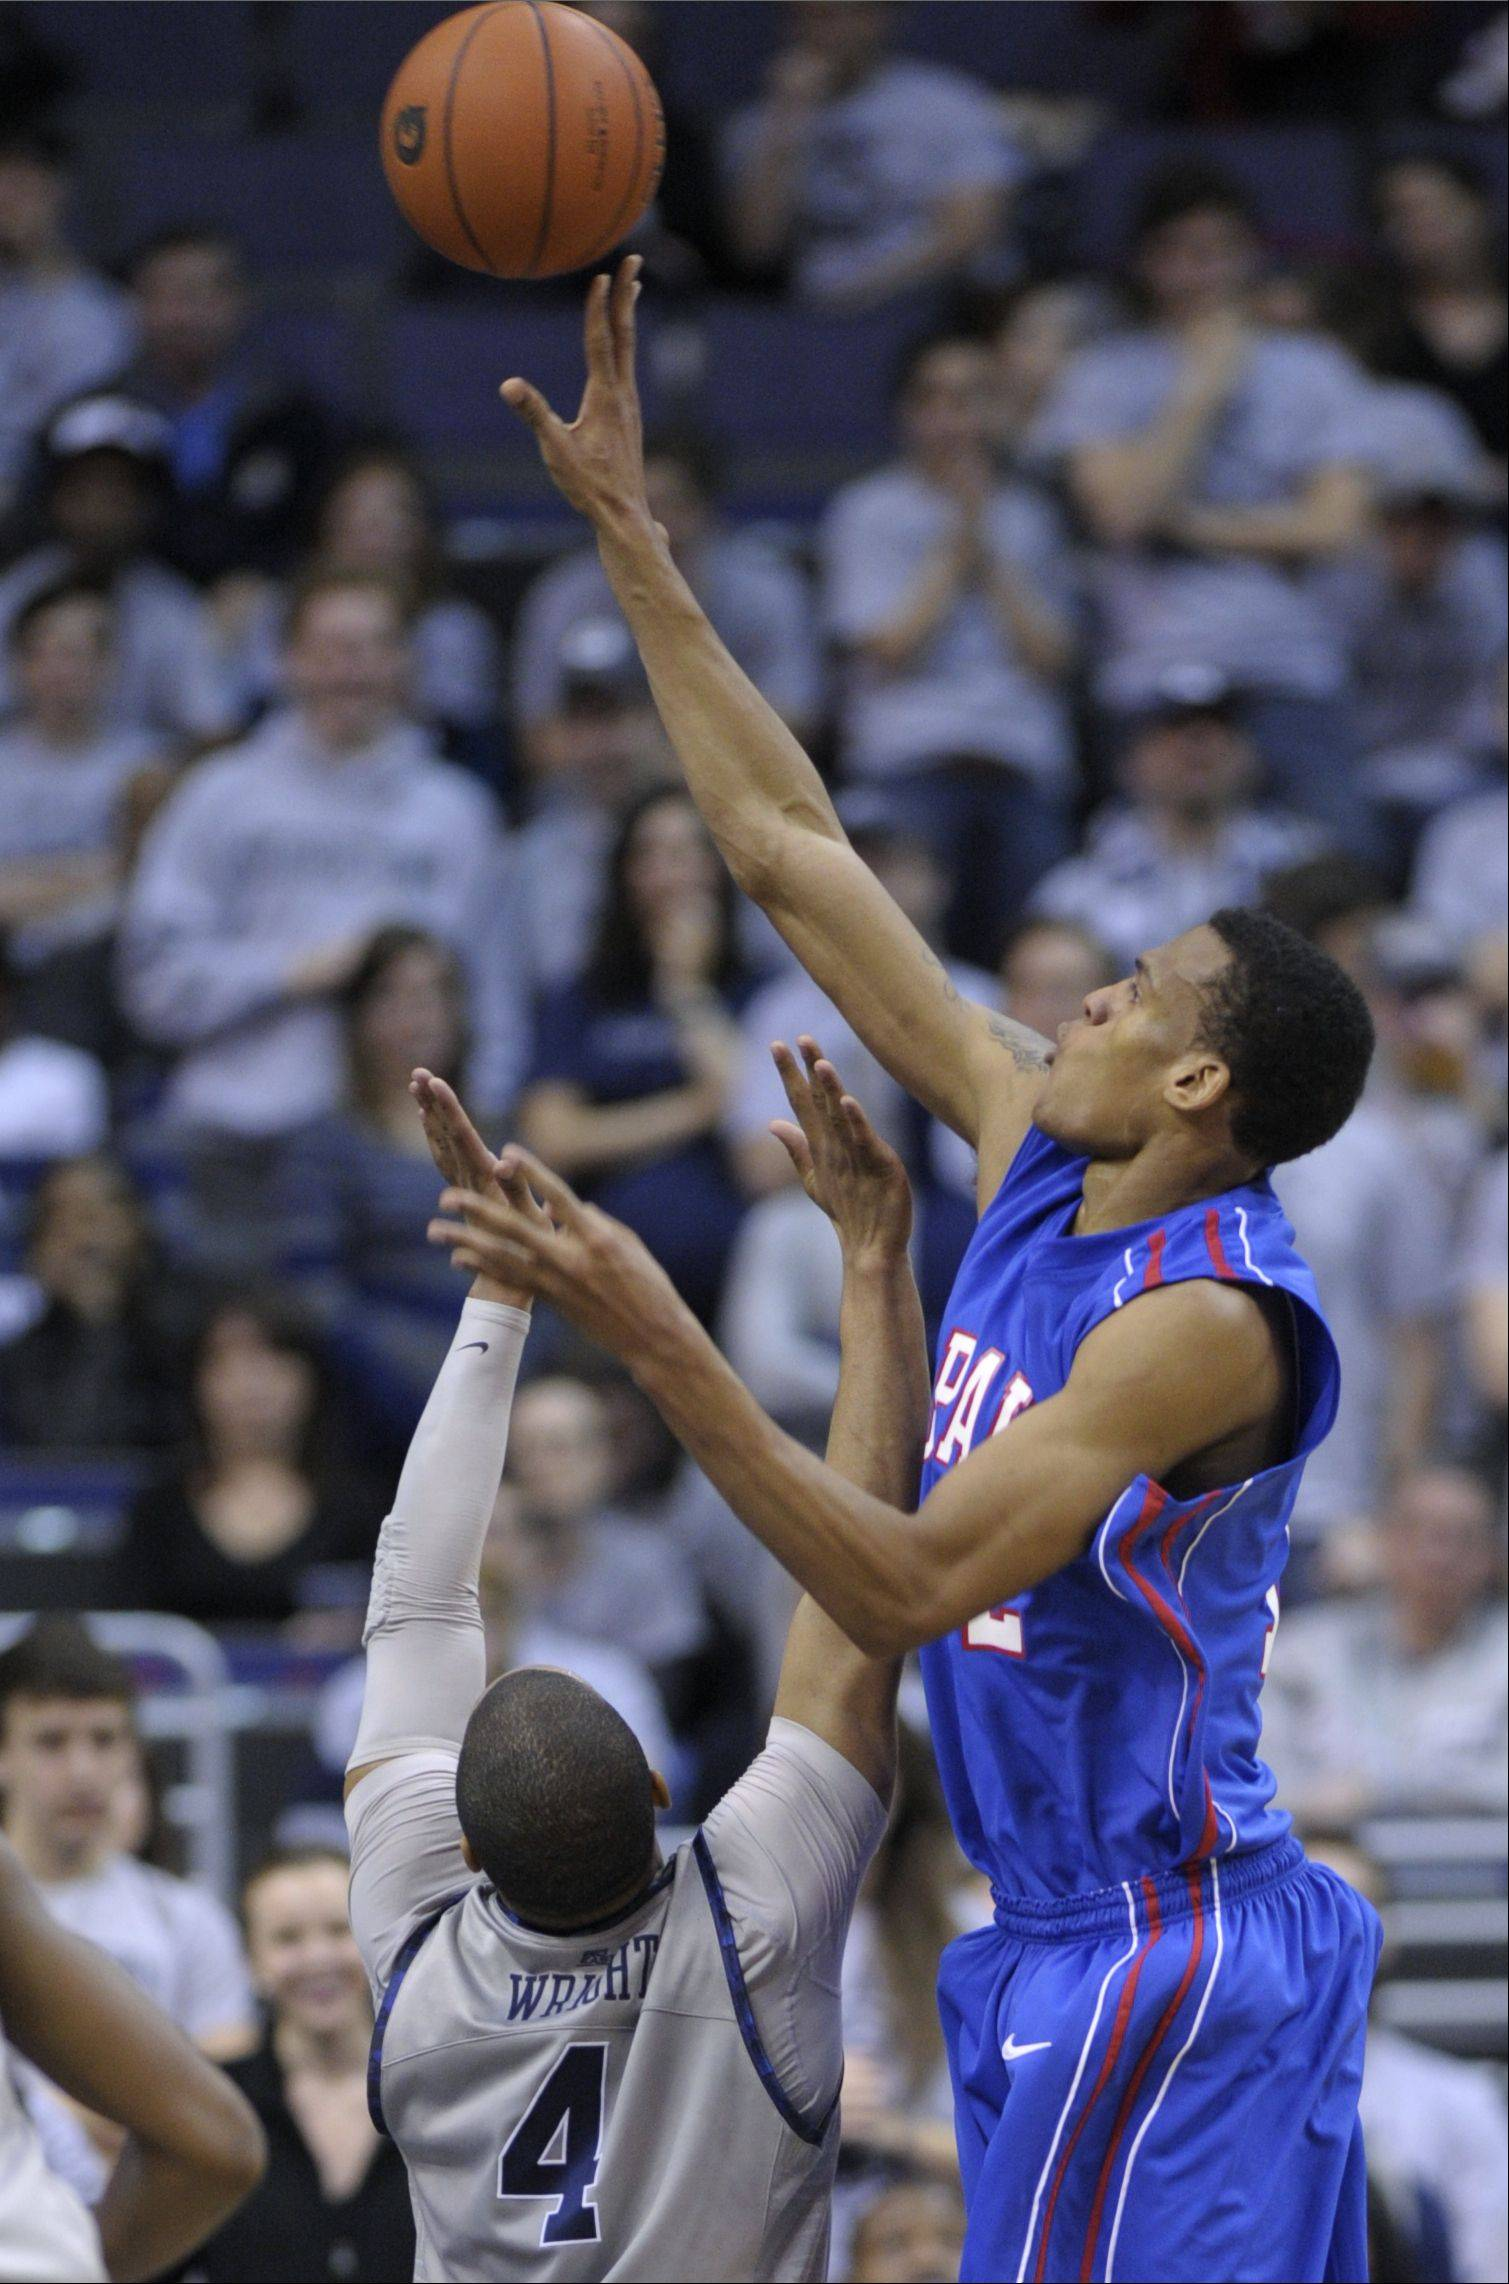 DePaul returns its top four scorers from last season, including forward Cleveland Melvin, for the 2012-13 men's basketball season.